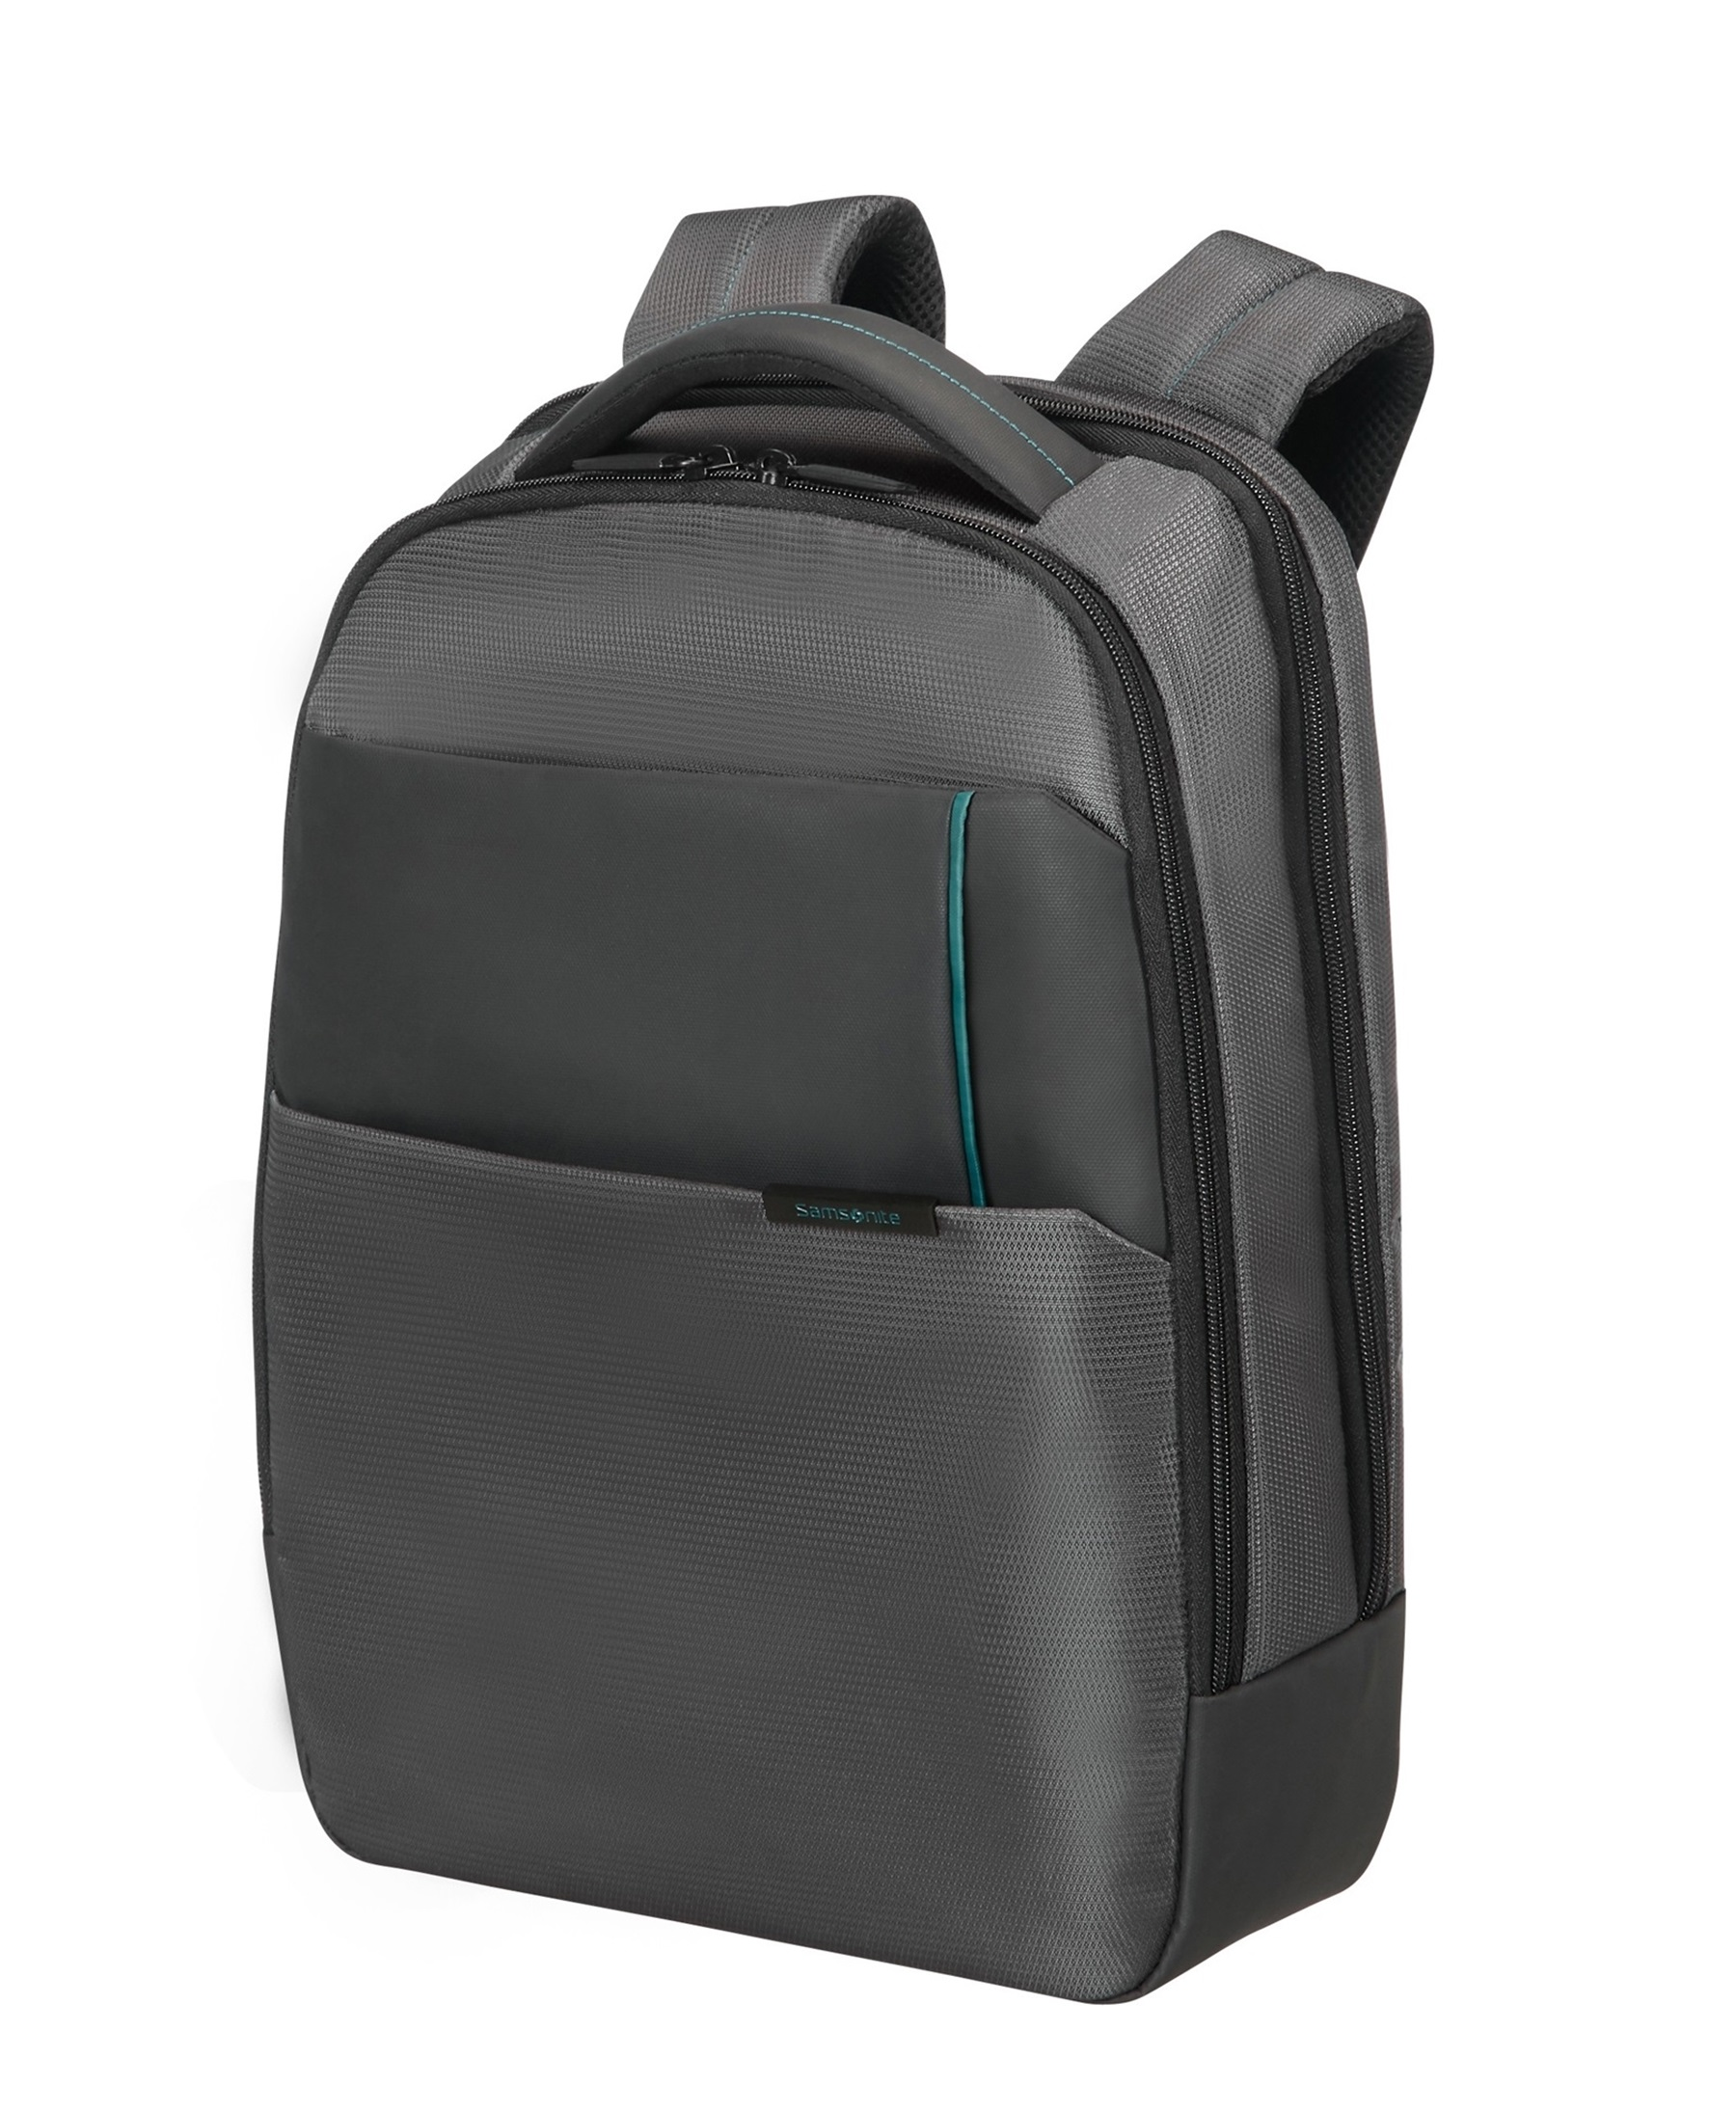 SAMSONITE - BORSE NOTEBOOK - 5414847698316